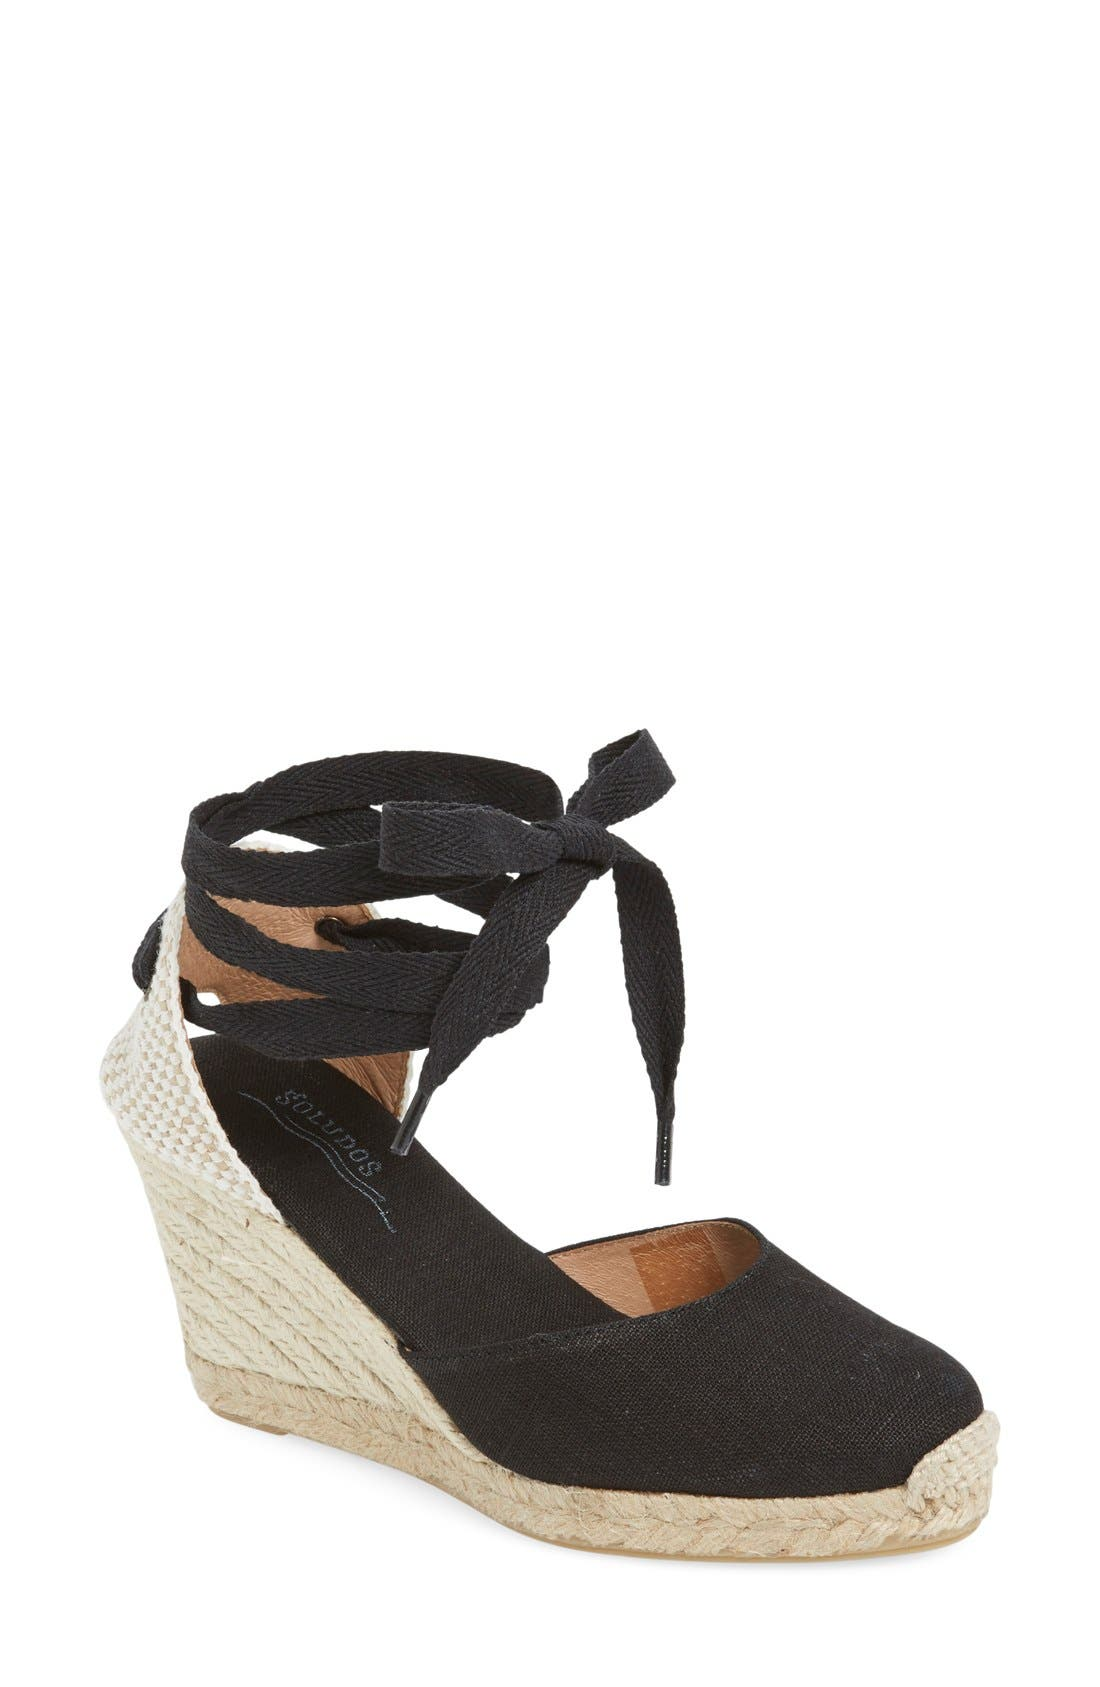 Soludos Wedge Lace-Up Espadrille Sandal (Women)